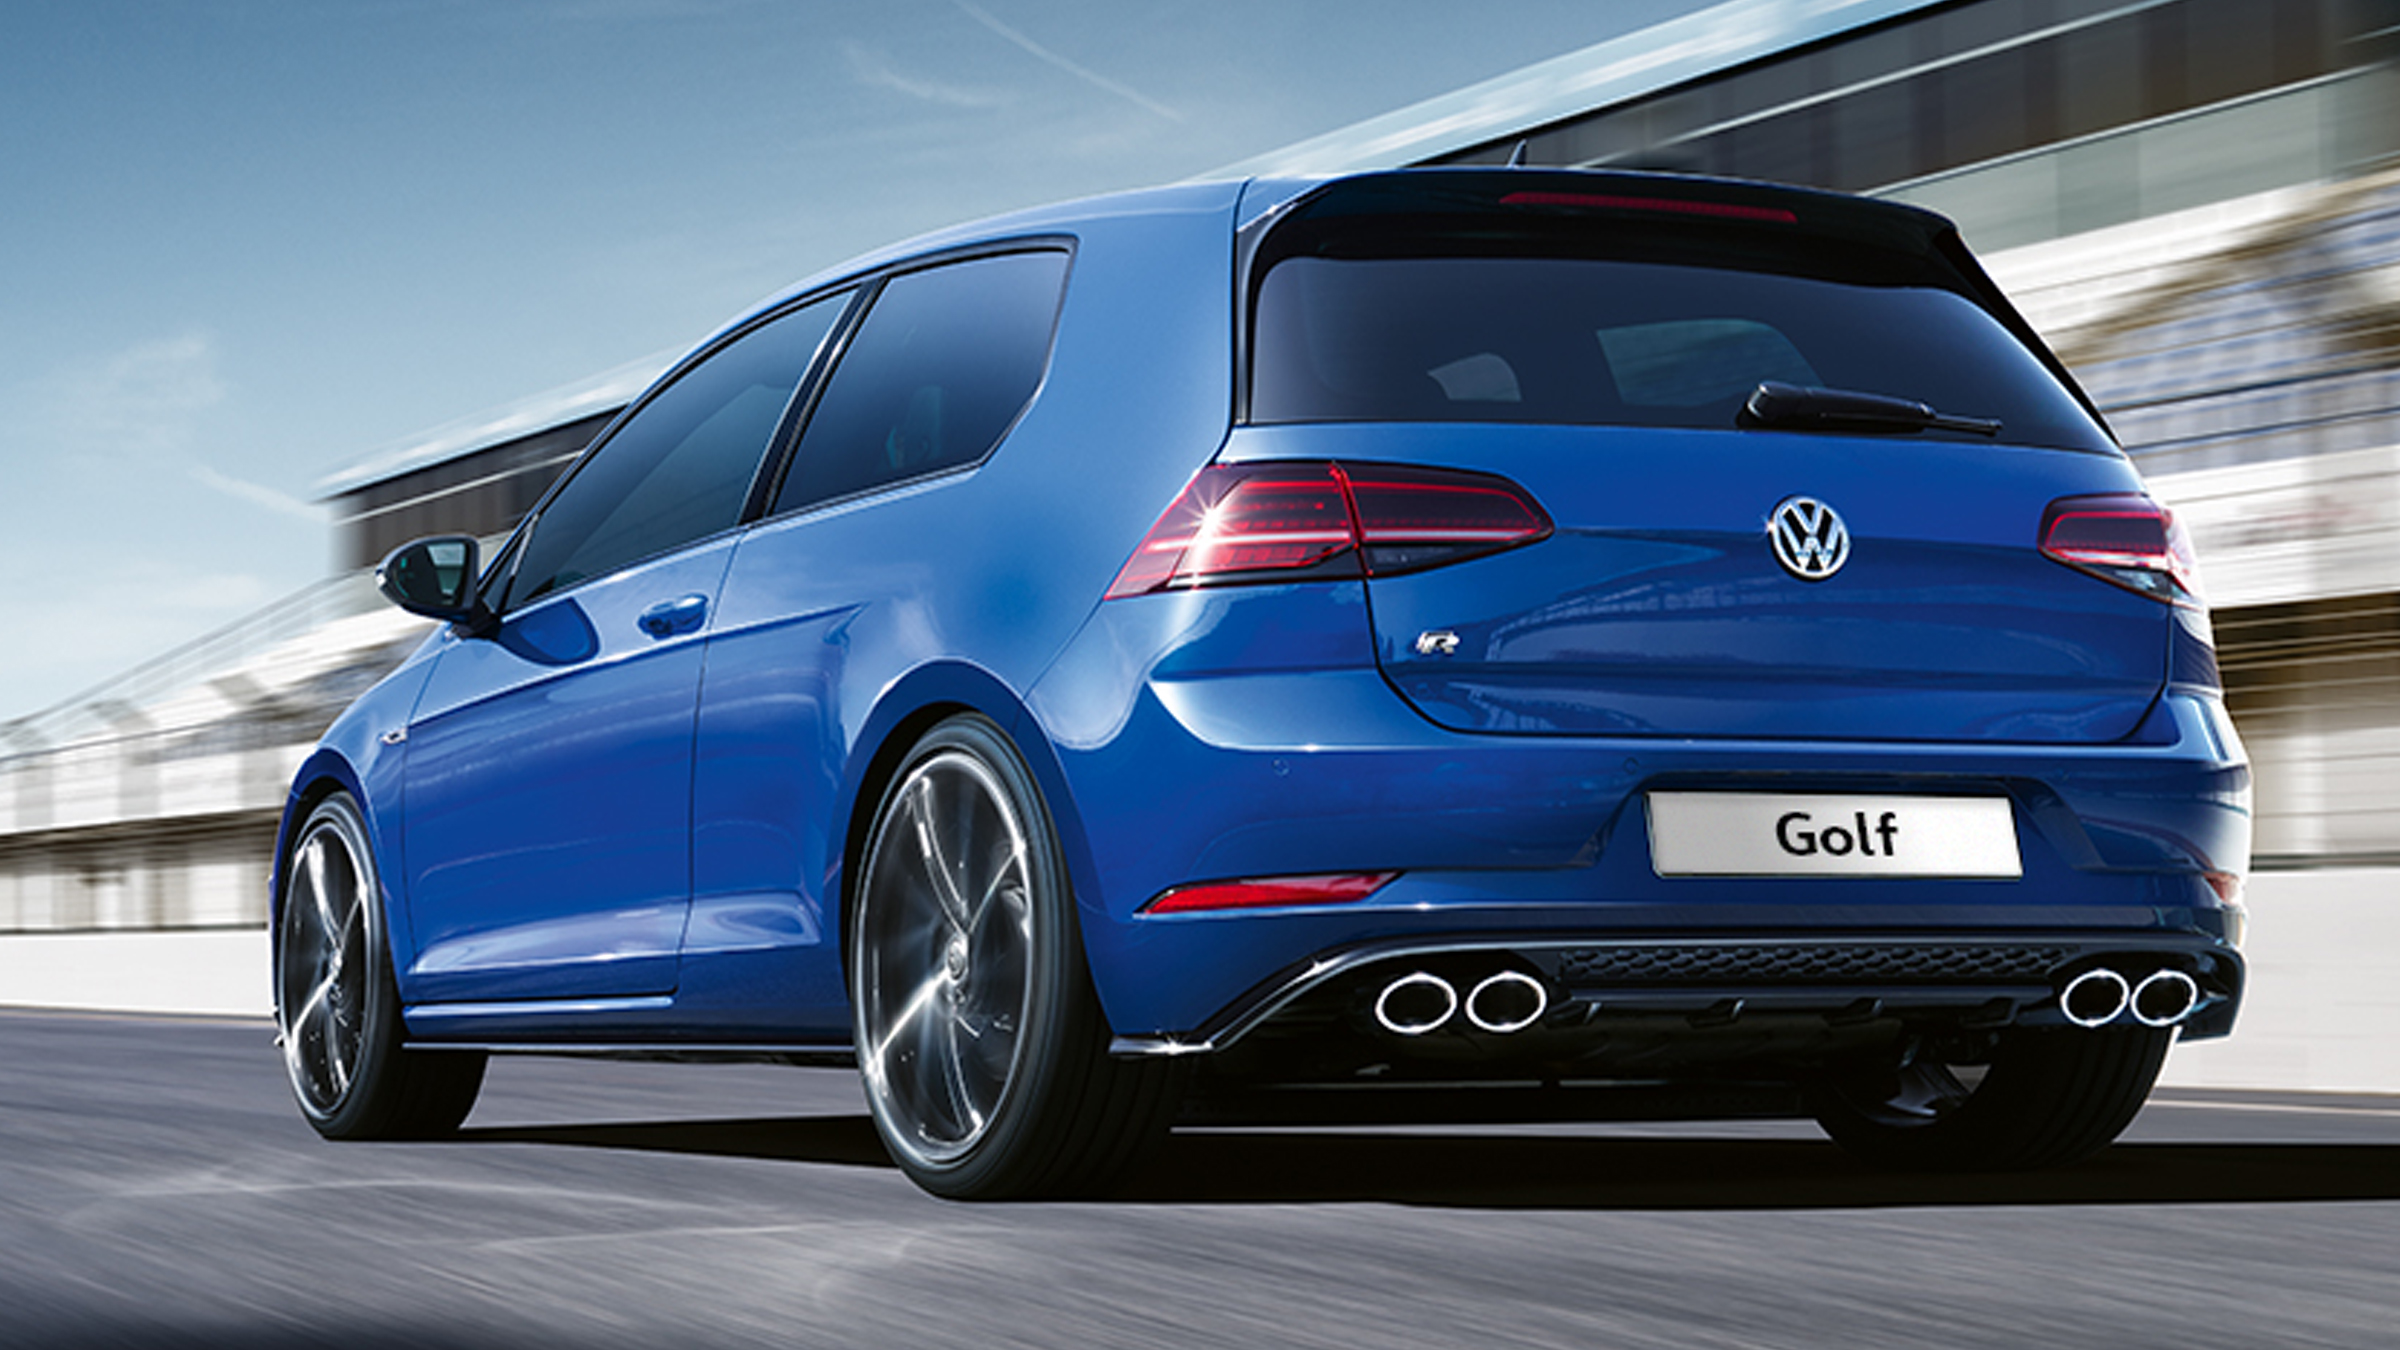 vw golf r lease deals 2018 lamoureph blog. Black Bedroom Furniture Sets. Home Design Ideas